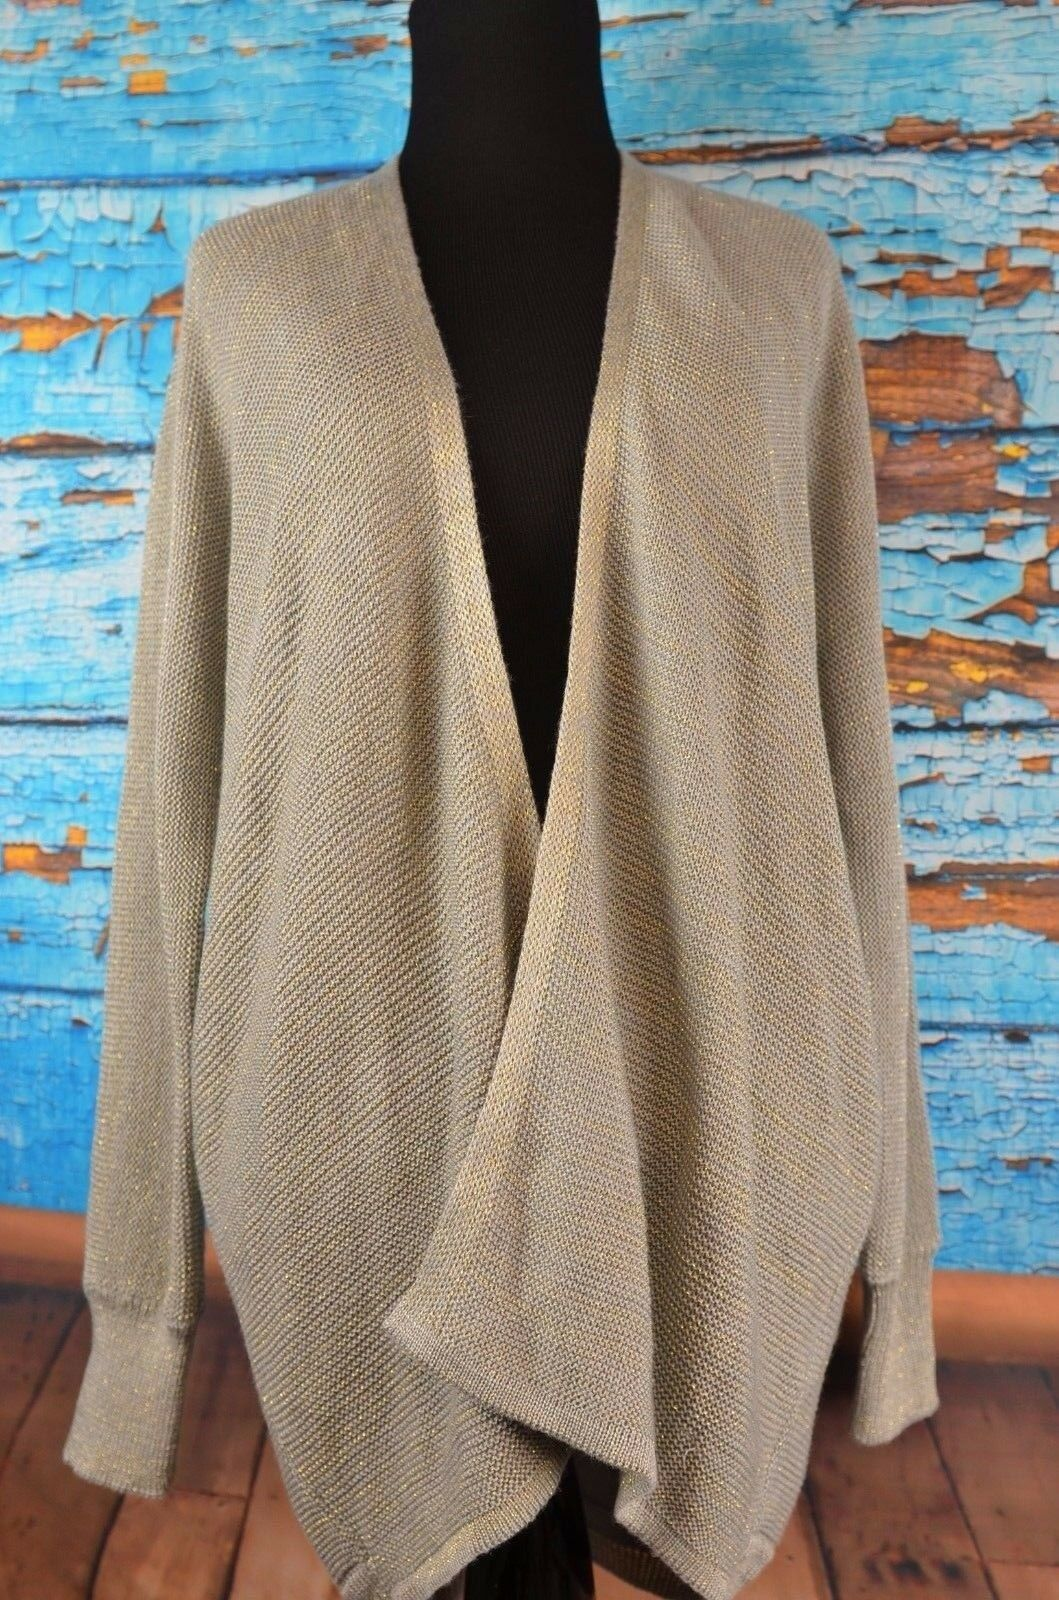 Costa whitea Open Front Cardigan Cutout Sweater Size Medium Asymmetric Boho Knit